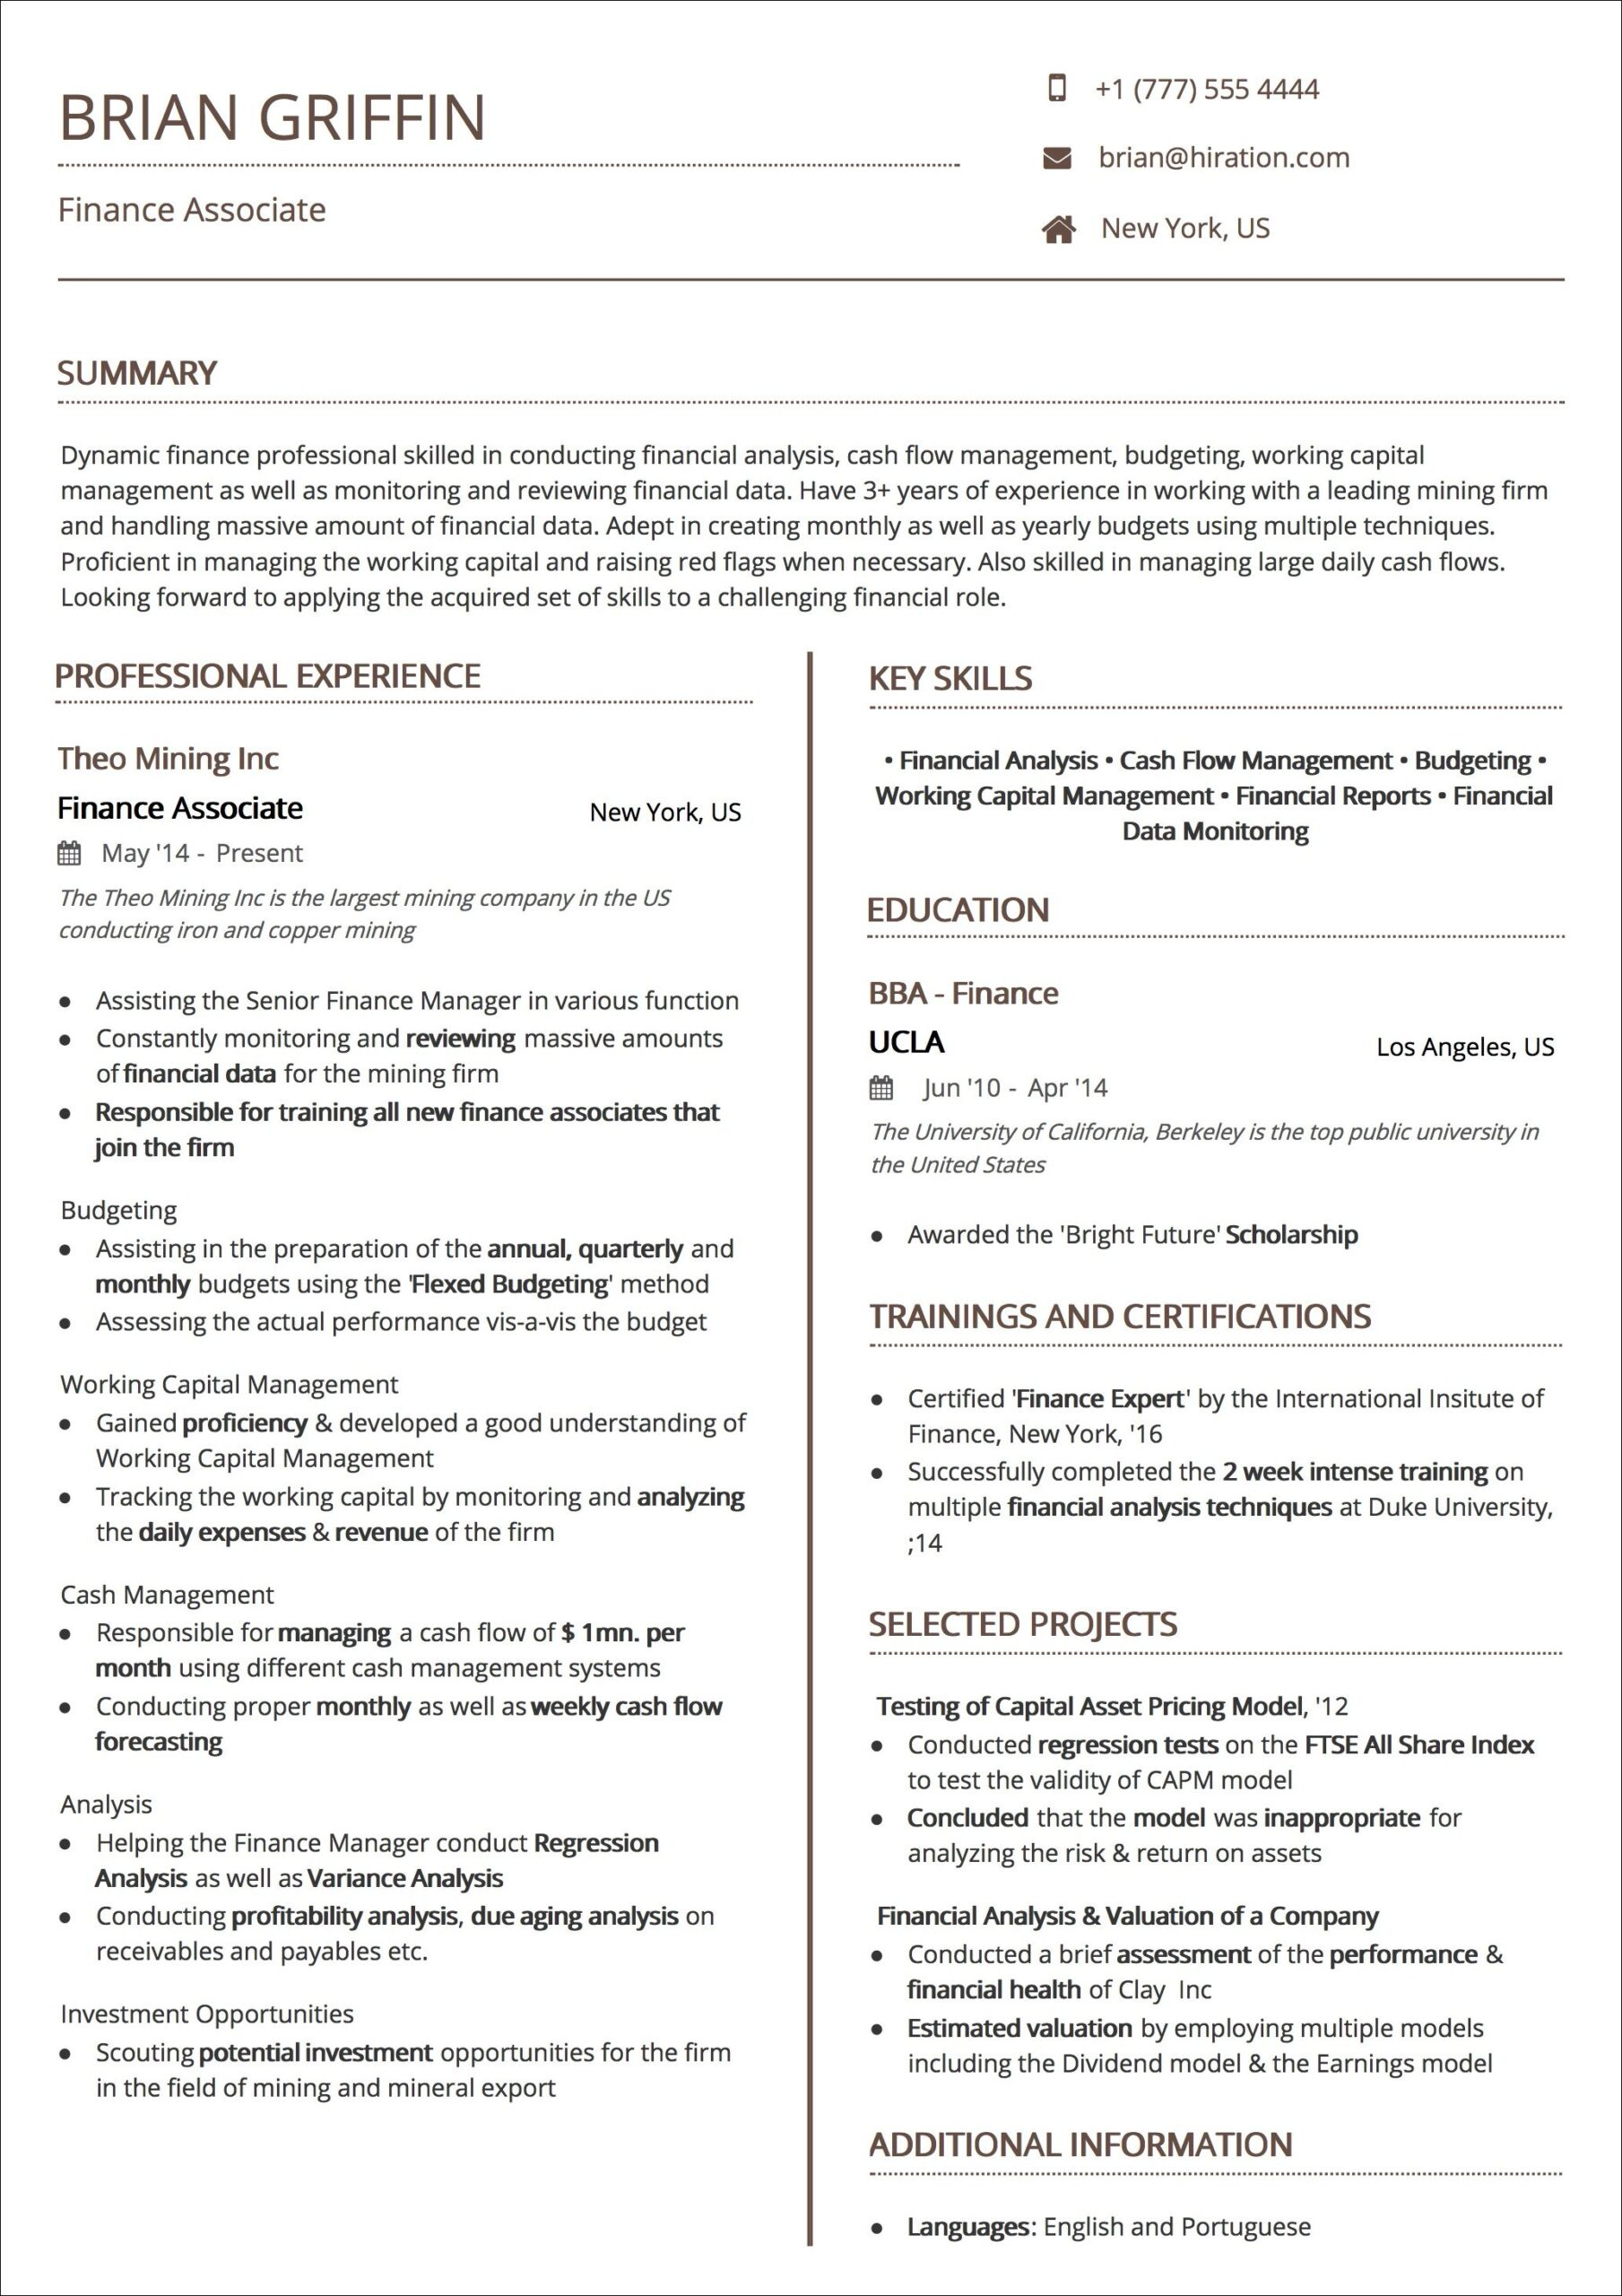 resume templates the guide to choosing best template free ats friendly uniform landscape Resume Free Resume Templates Ats Friendly